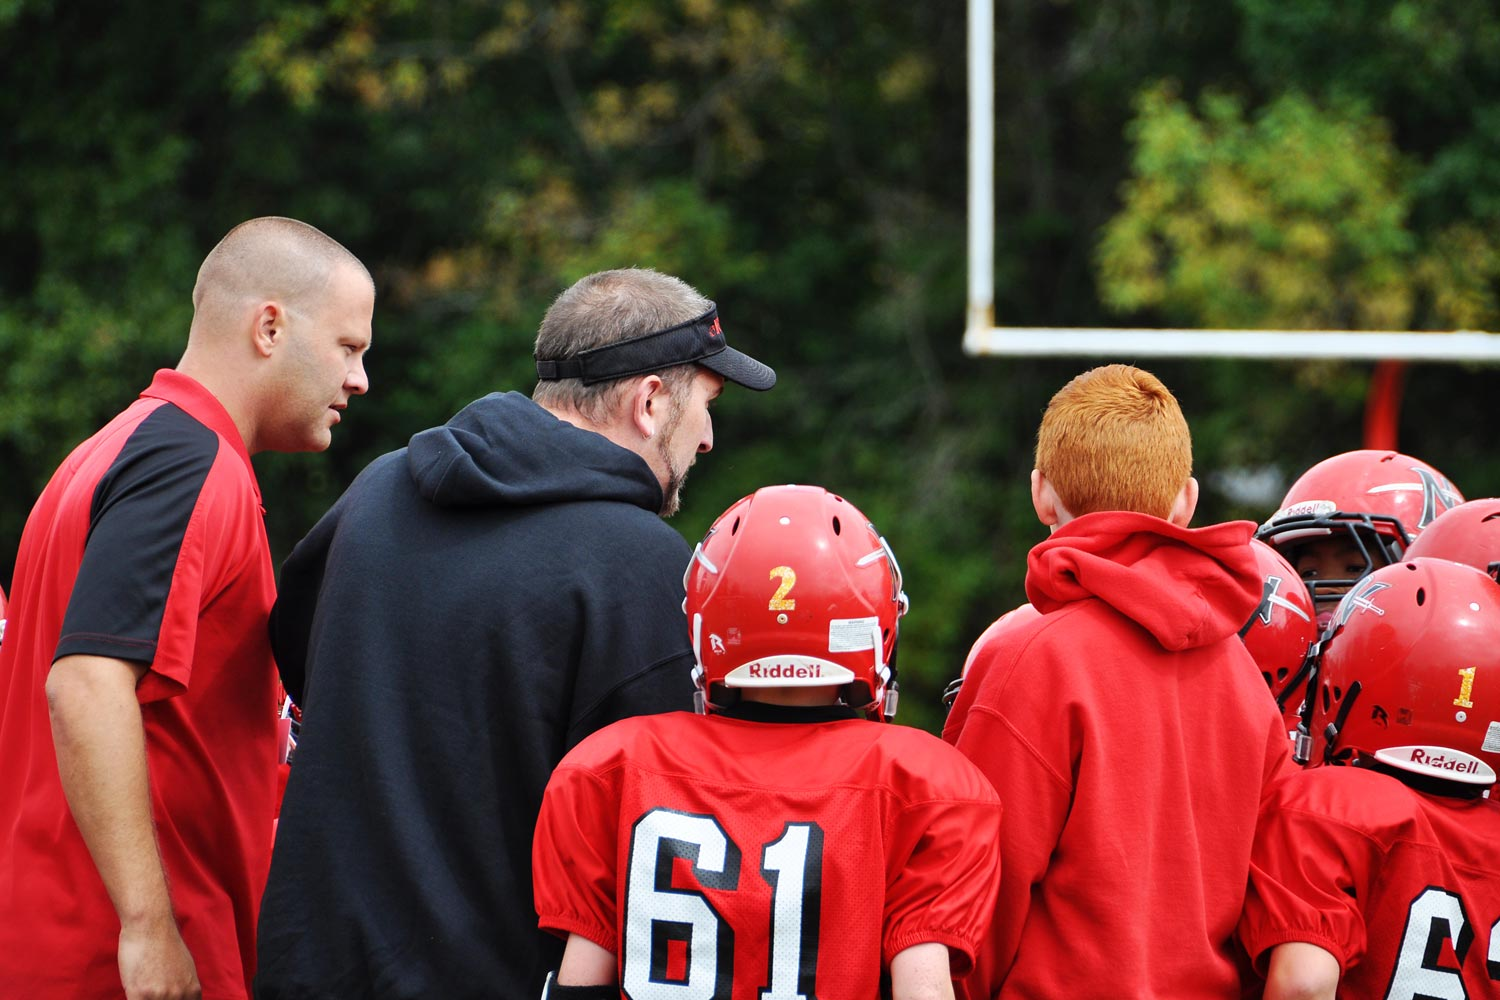 Coaches for Norchester Red Knights 100 lb Football Team